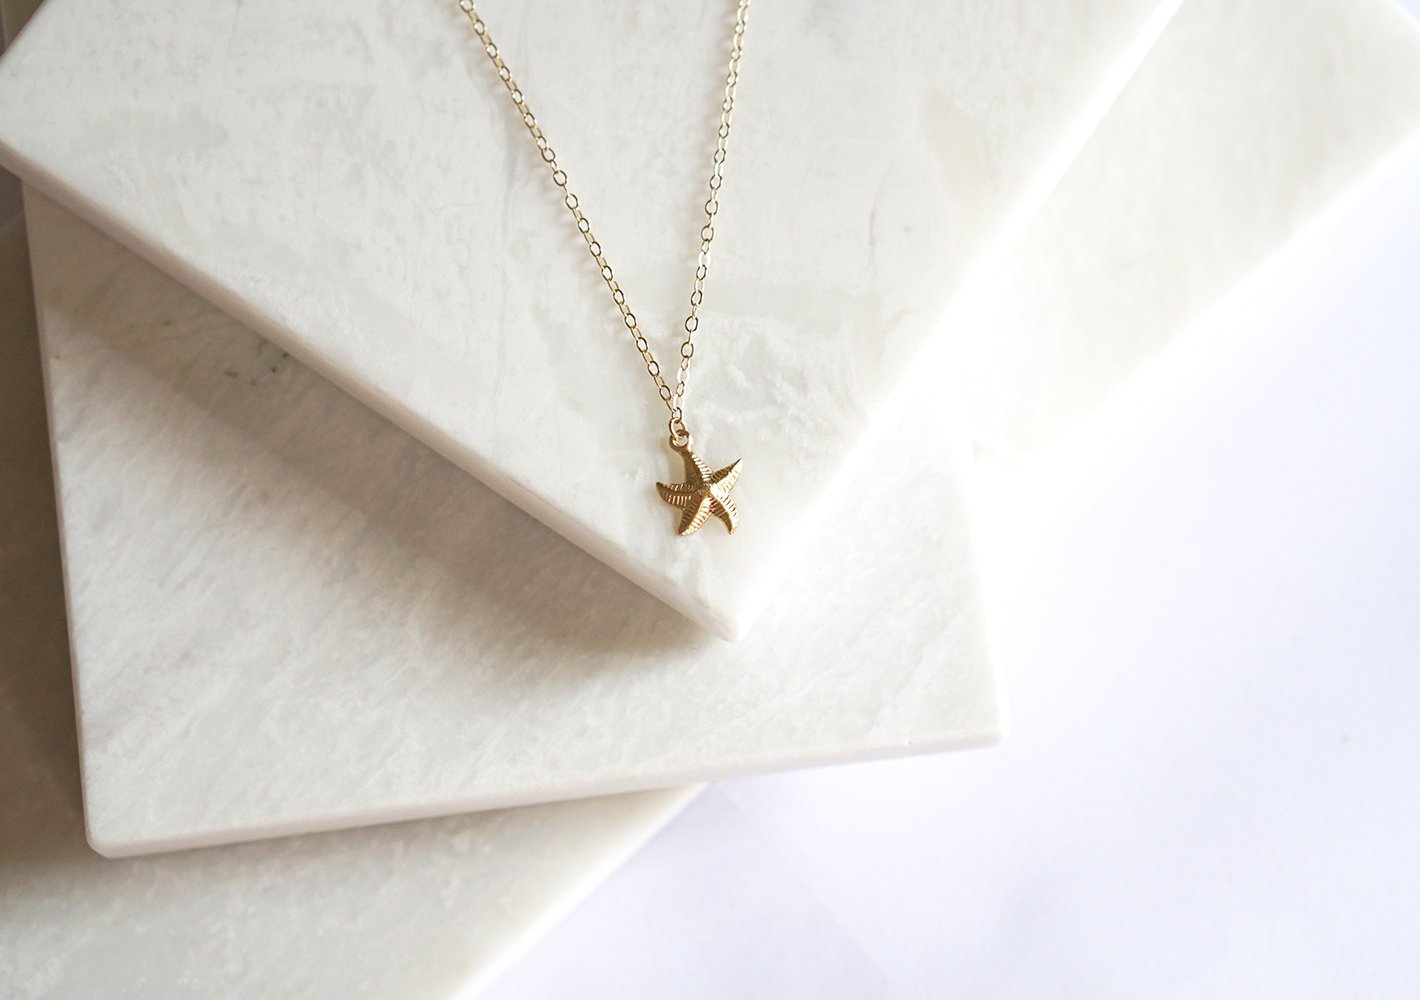 14k Gold Filled Starfish Necklace.